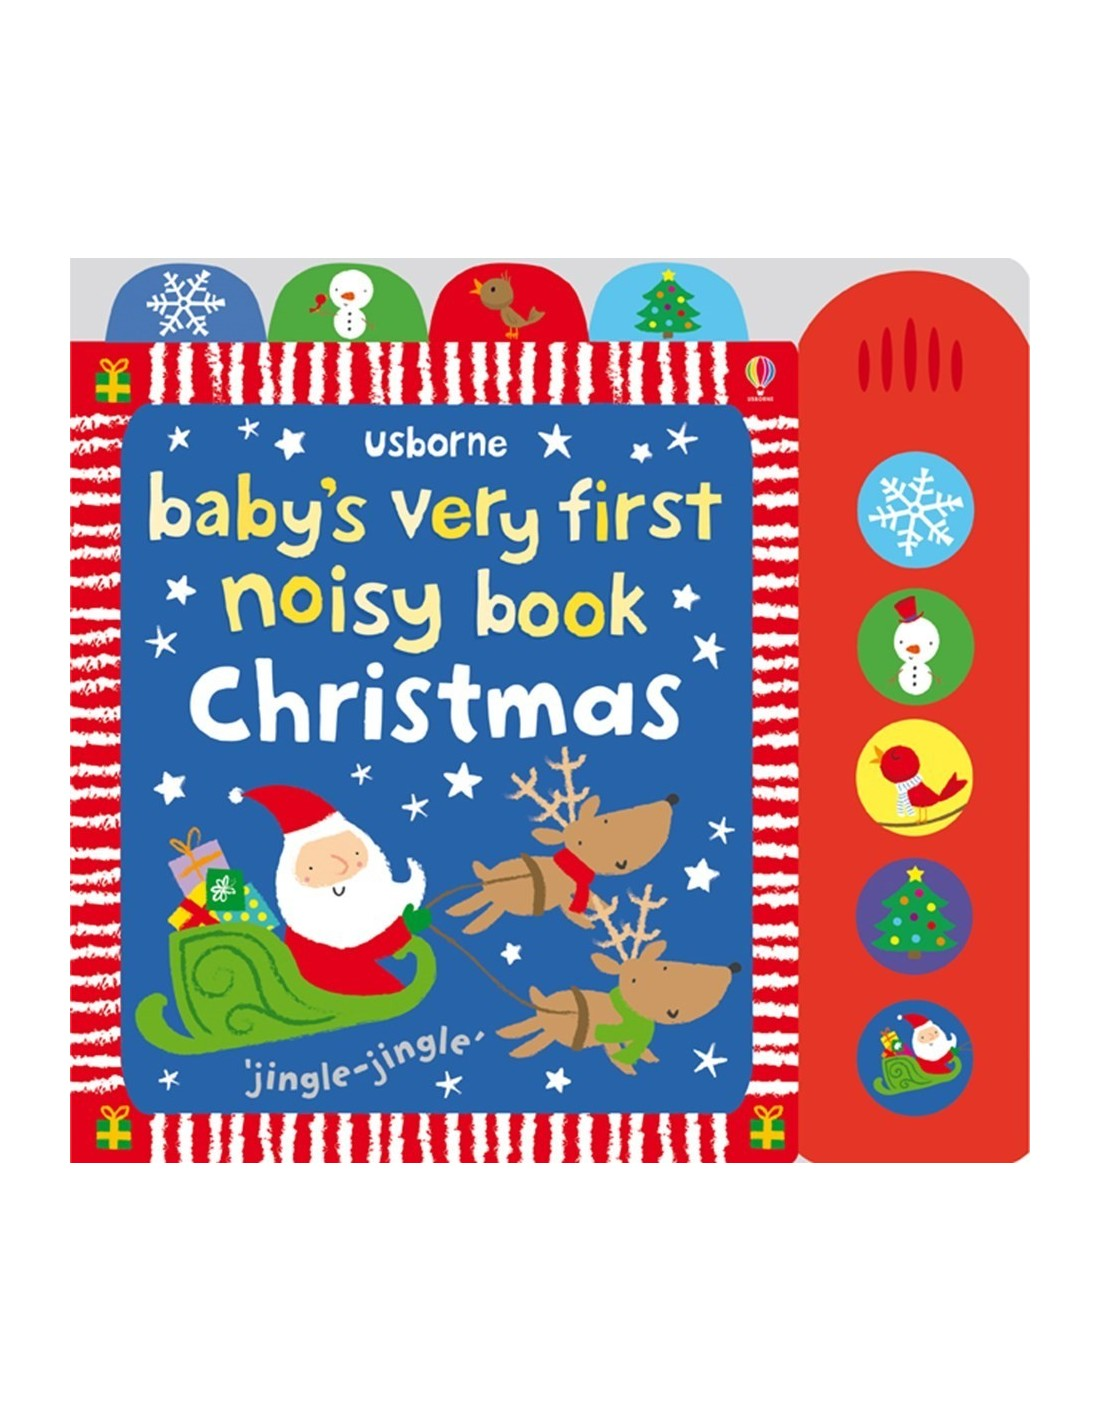 Baby's very first noisy book: Christmas